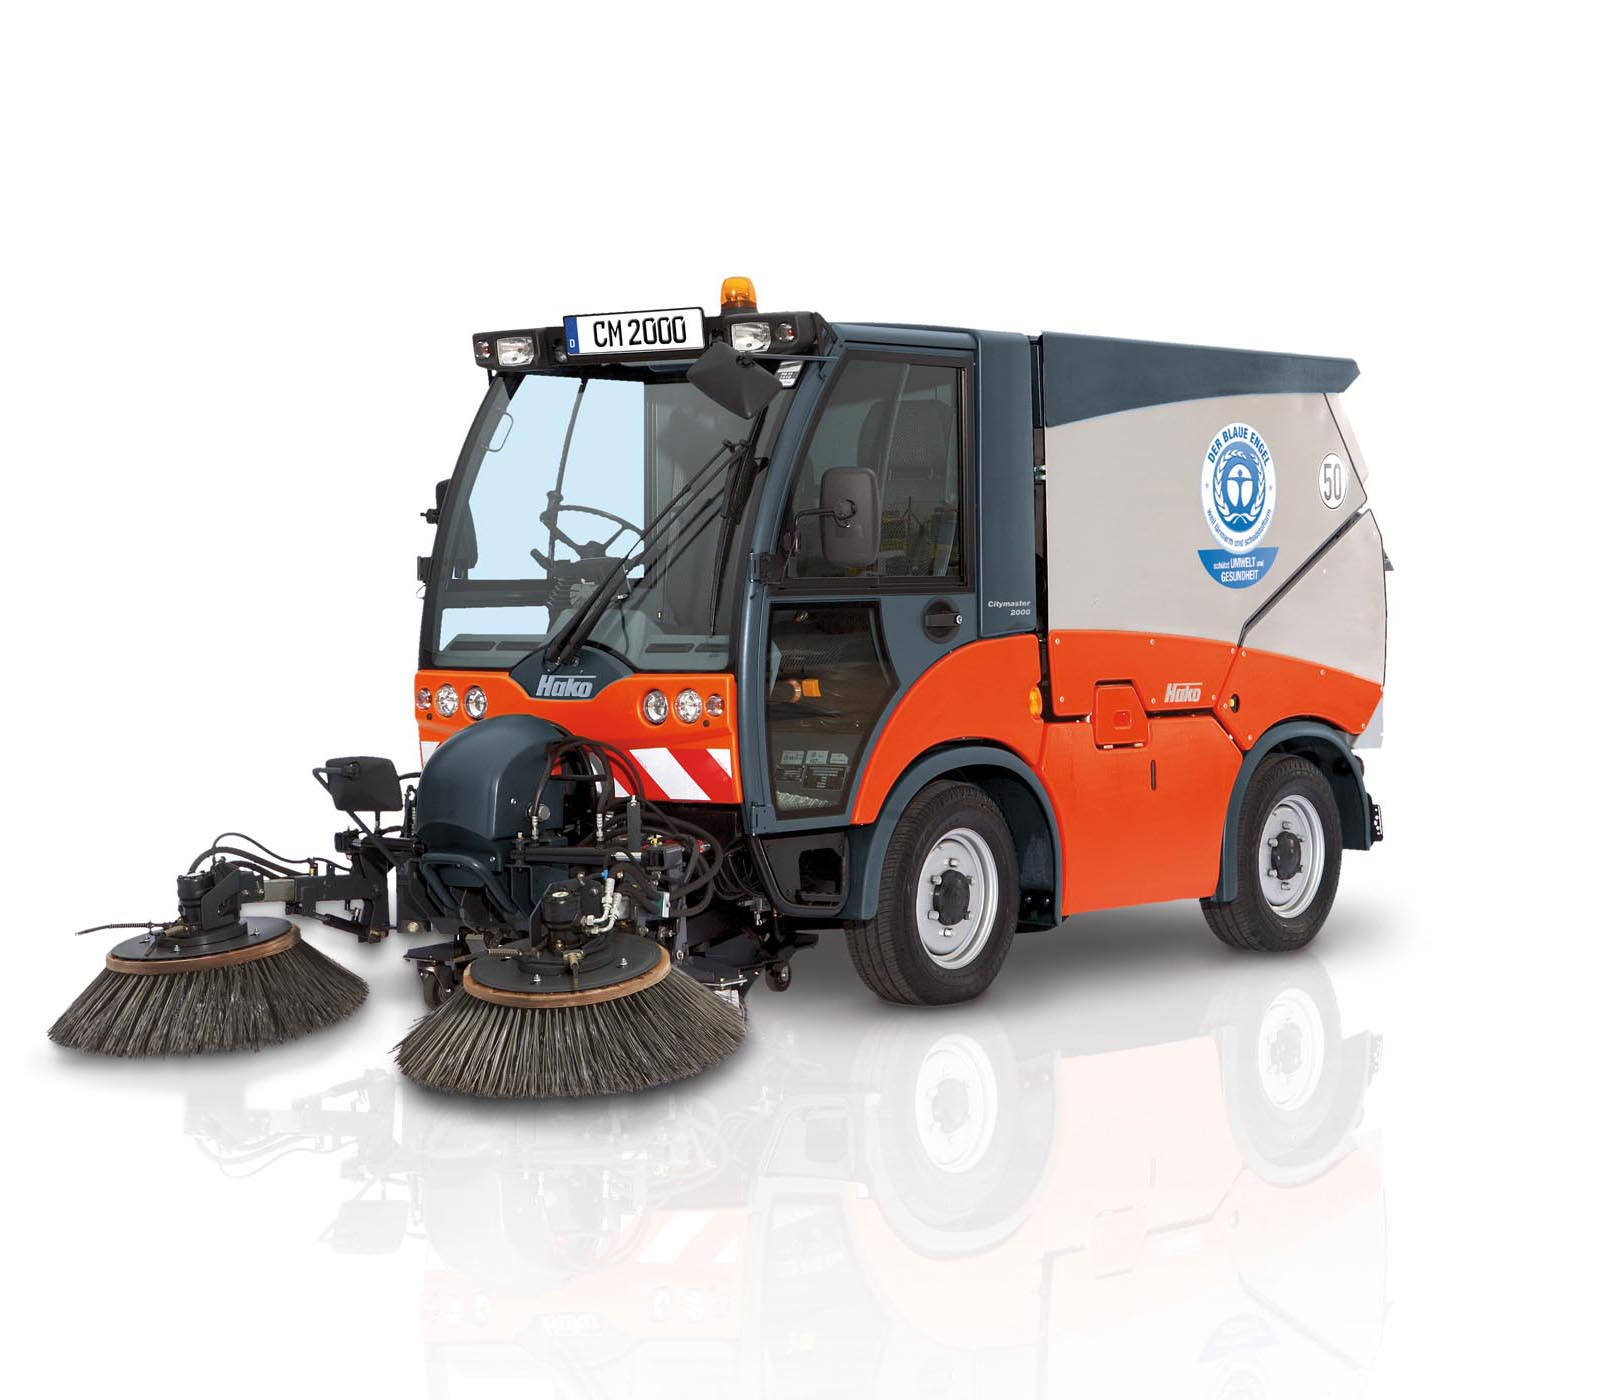 Citymaster 2000 Euro 5 Footpath Street Sweeper